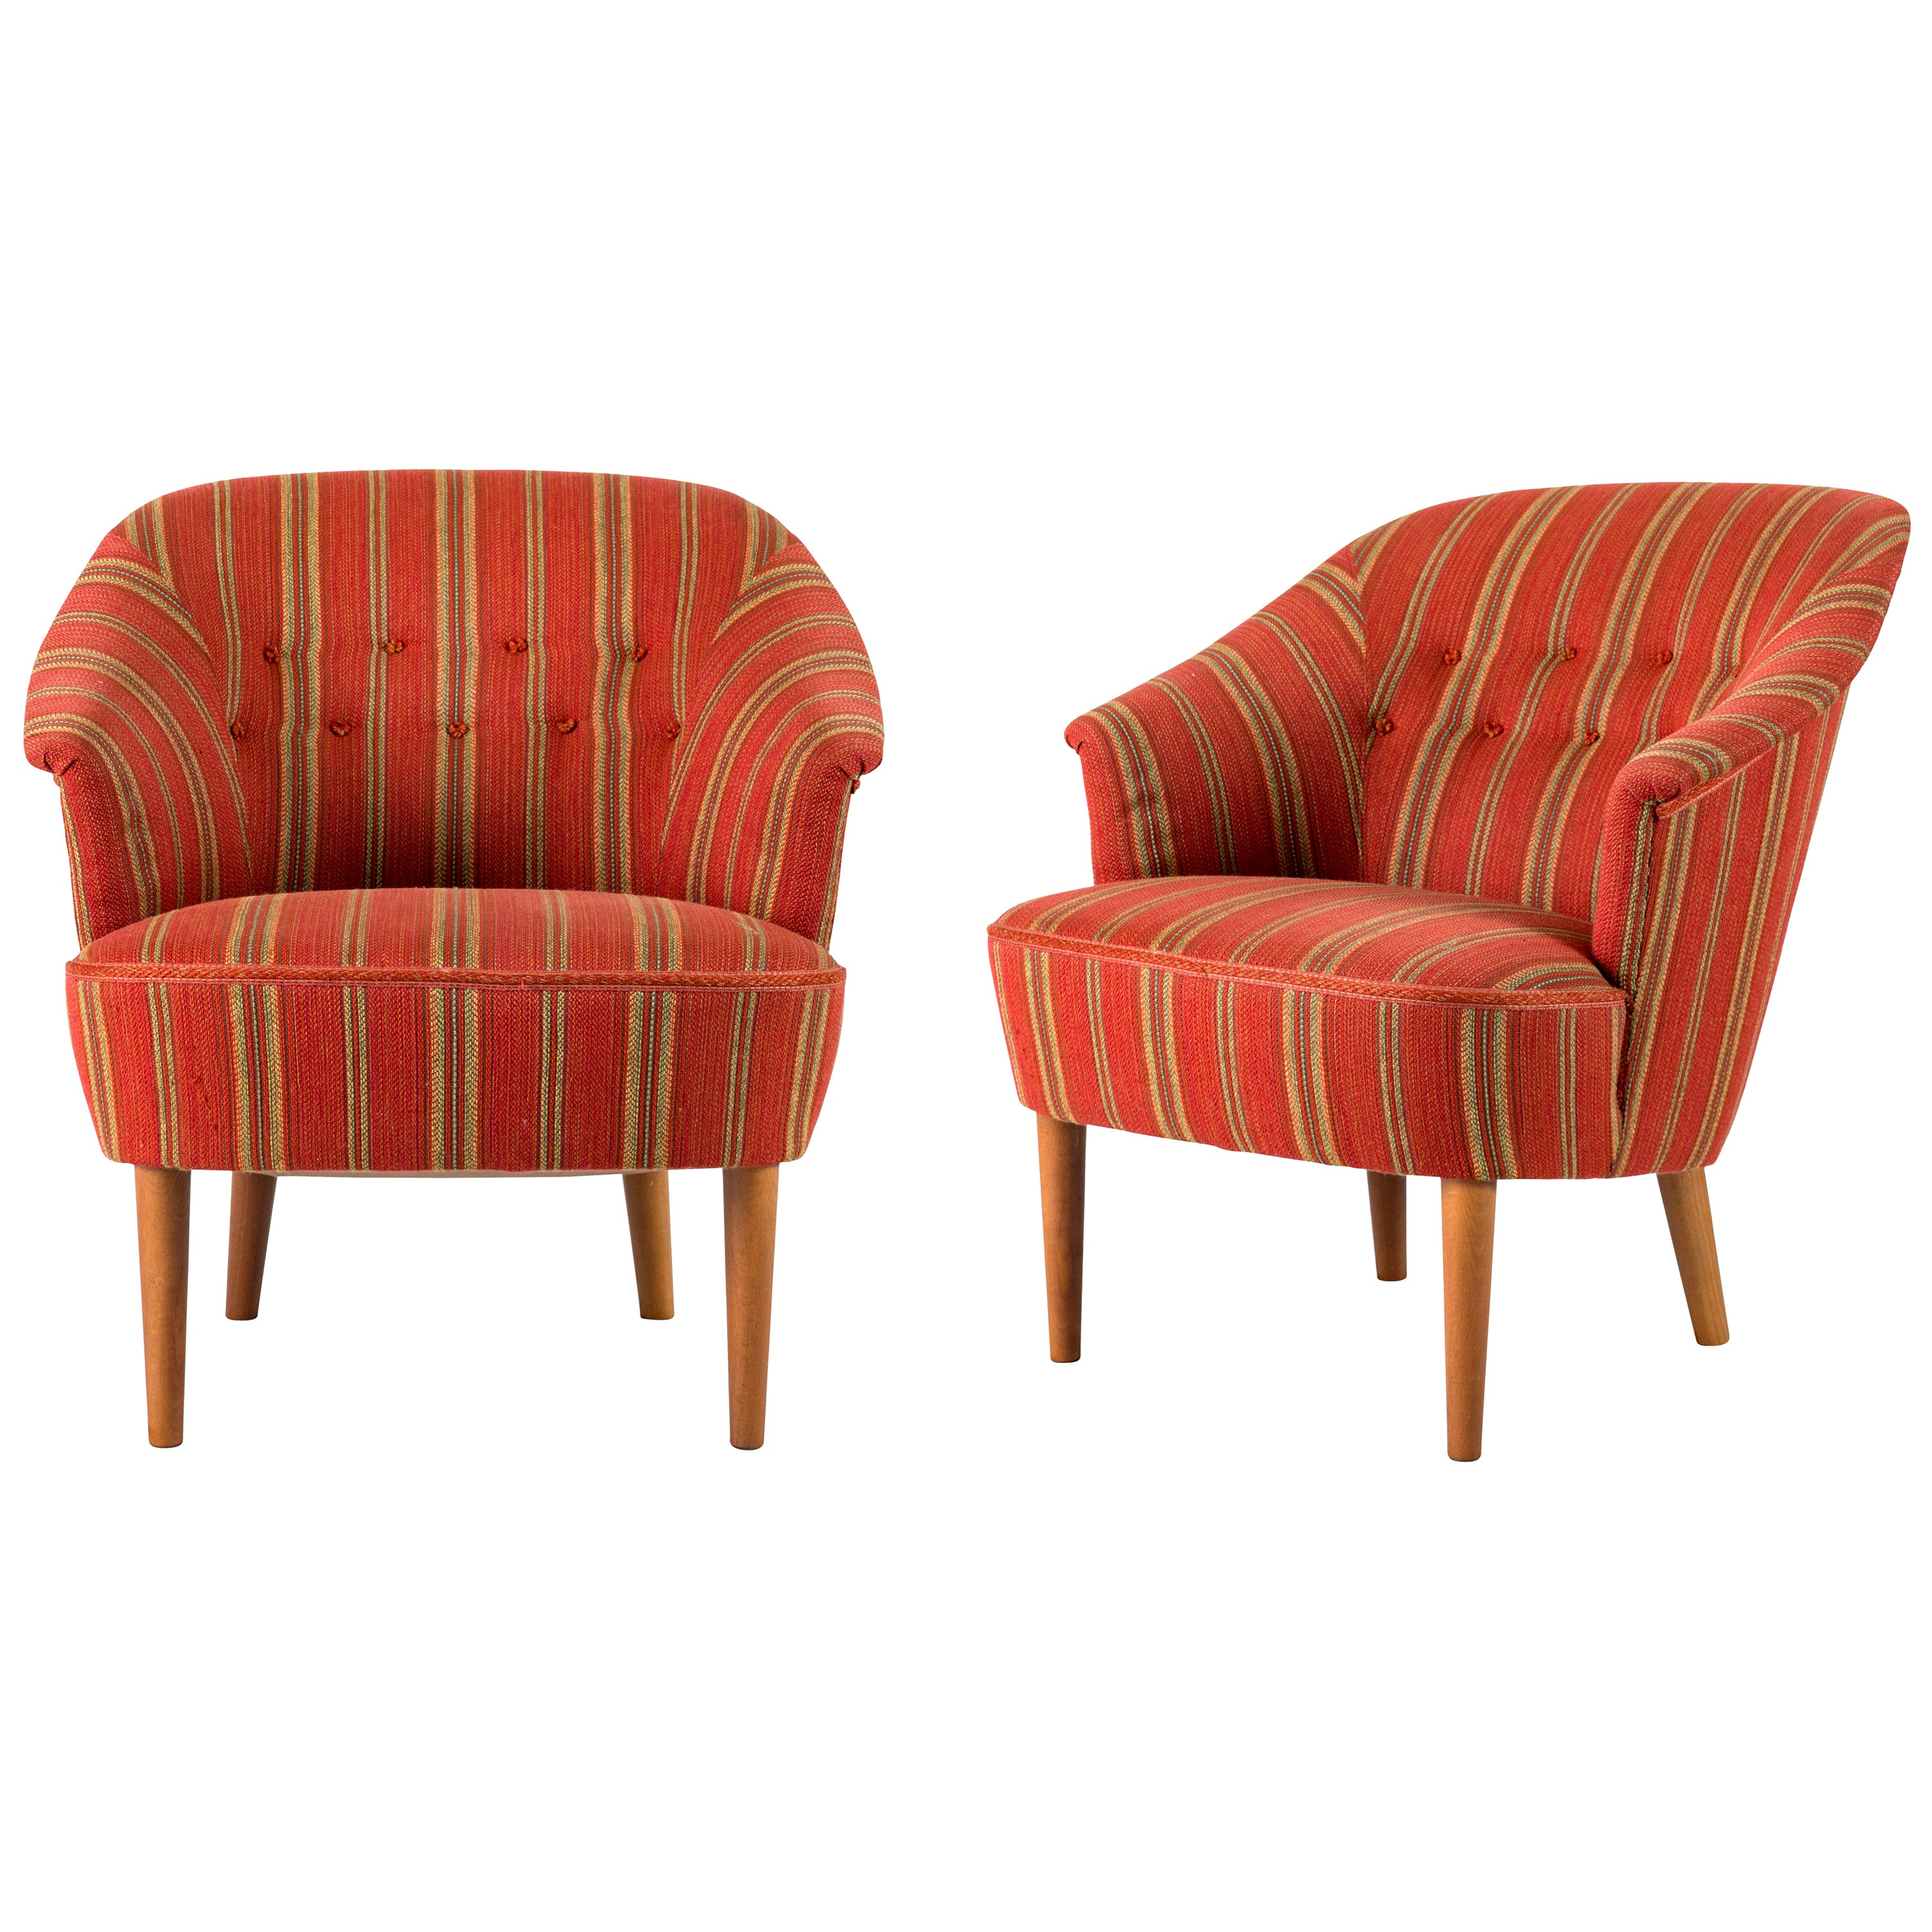 """Pair of Carl Malmsten """"Lillasyster"""" Lounge Chair"""